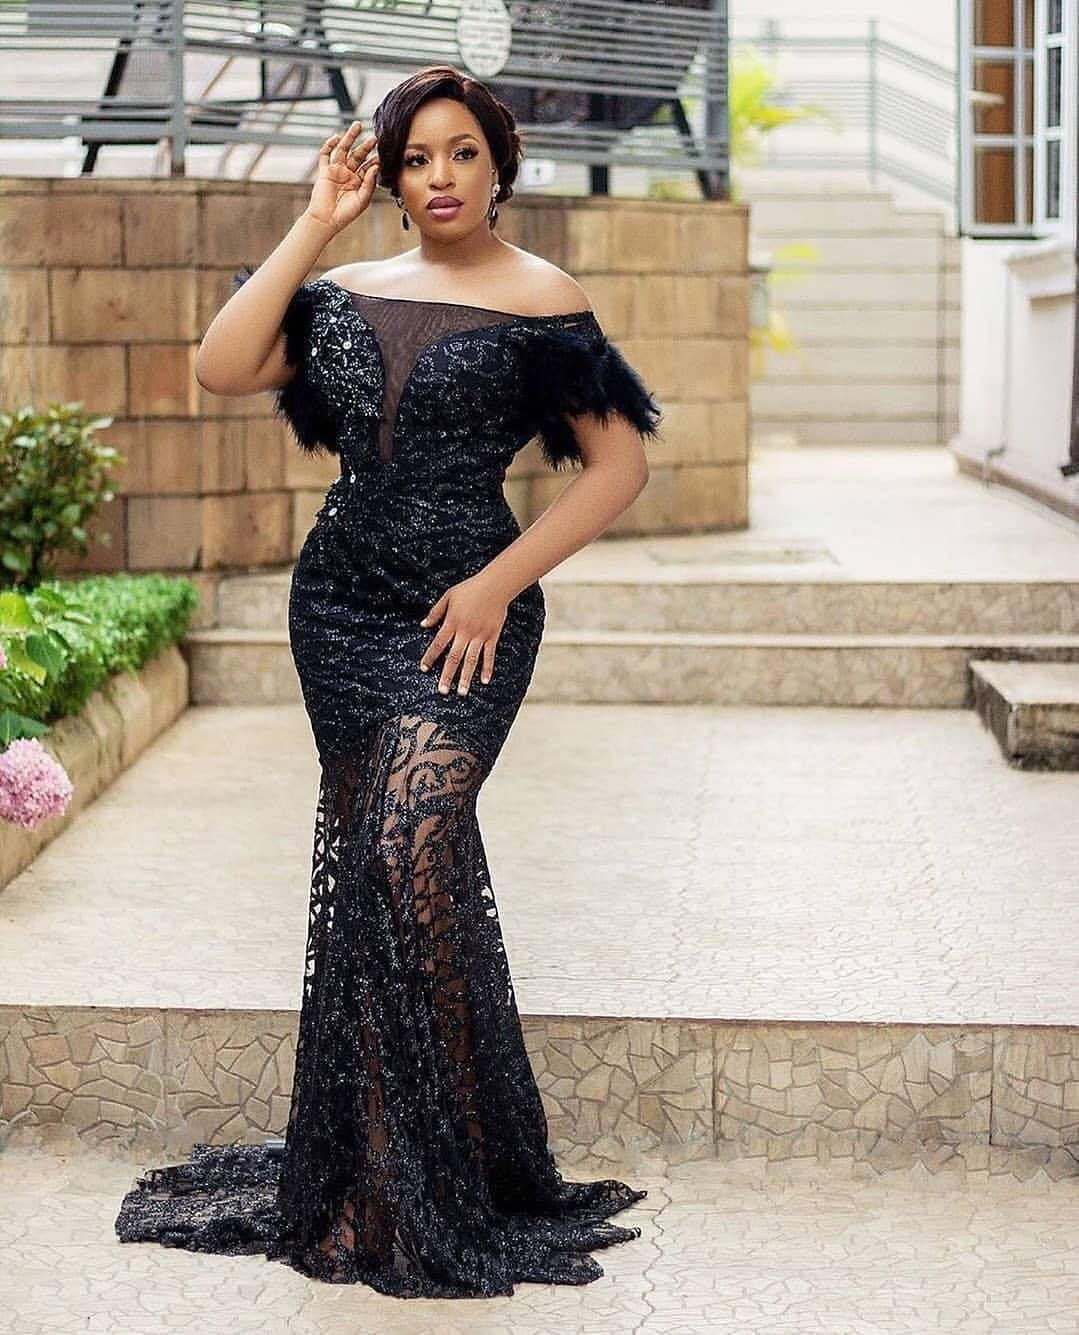 15 Black Lace Asoebi Styles To Make You Look Fabulous This Weekend In 2020 Lace Fashion Aso Ebi Lace Styles African Lace Dresses